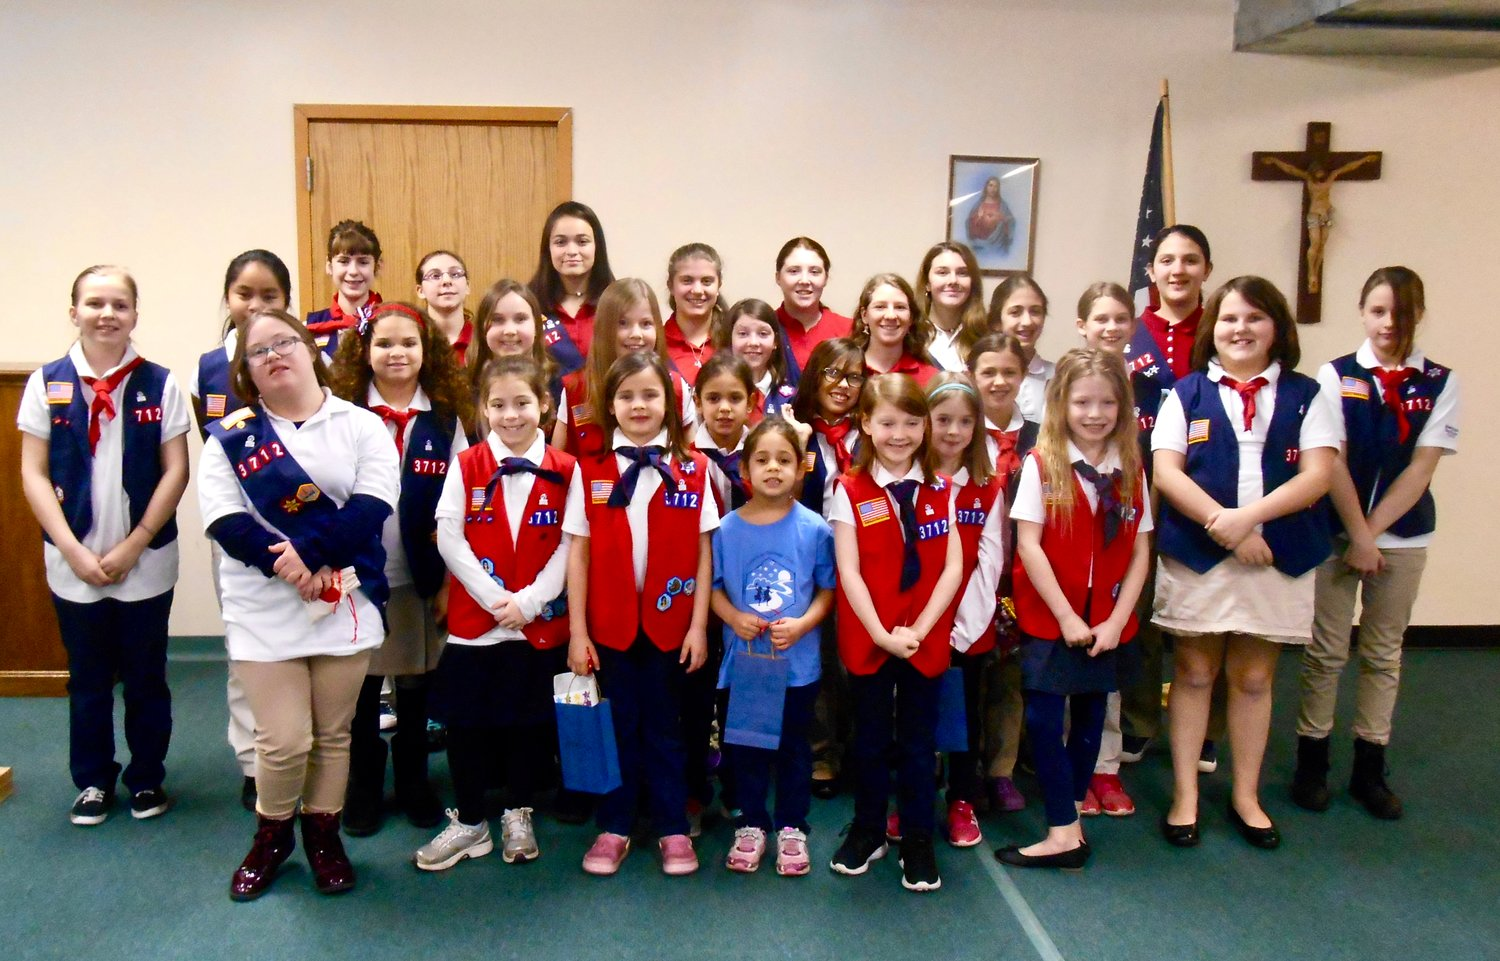 American Heritage Girls troop MA3712 celebrate Court of Awards Ceremony